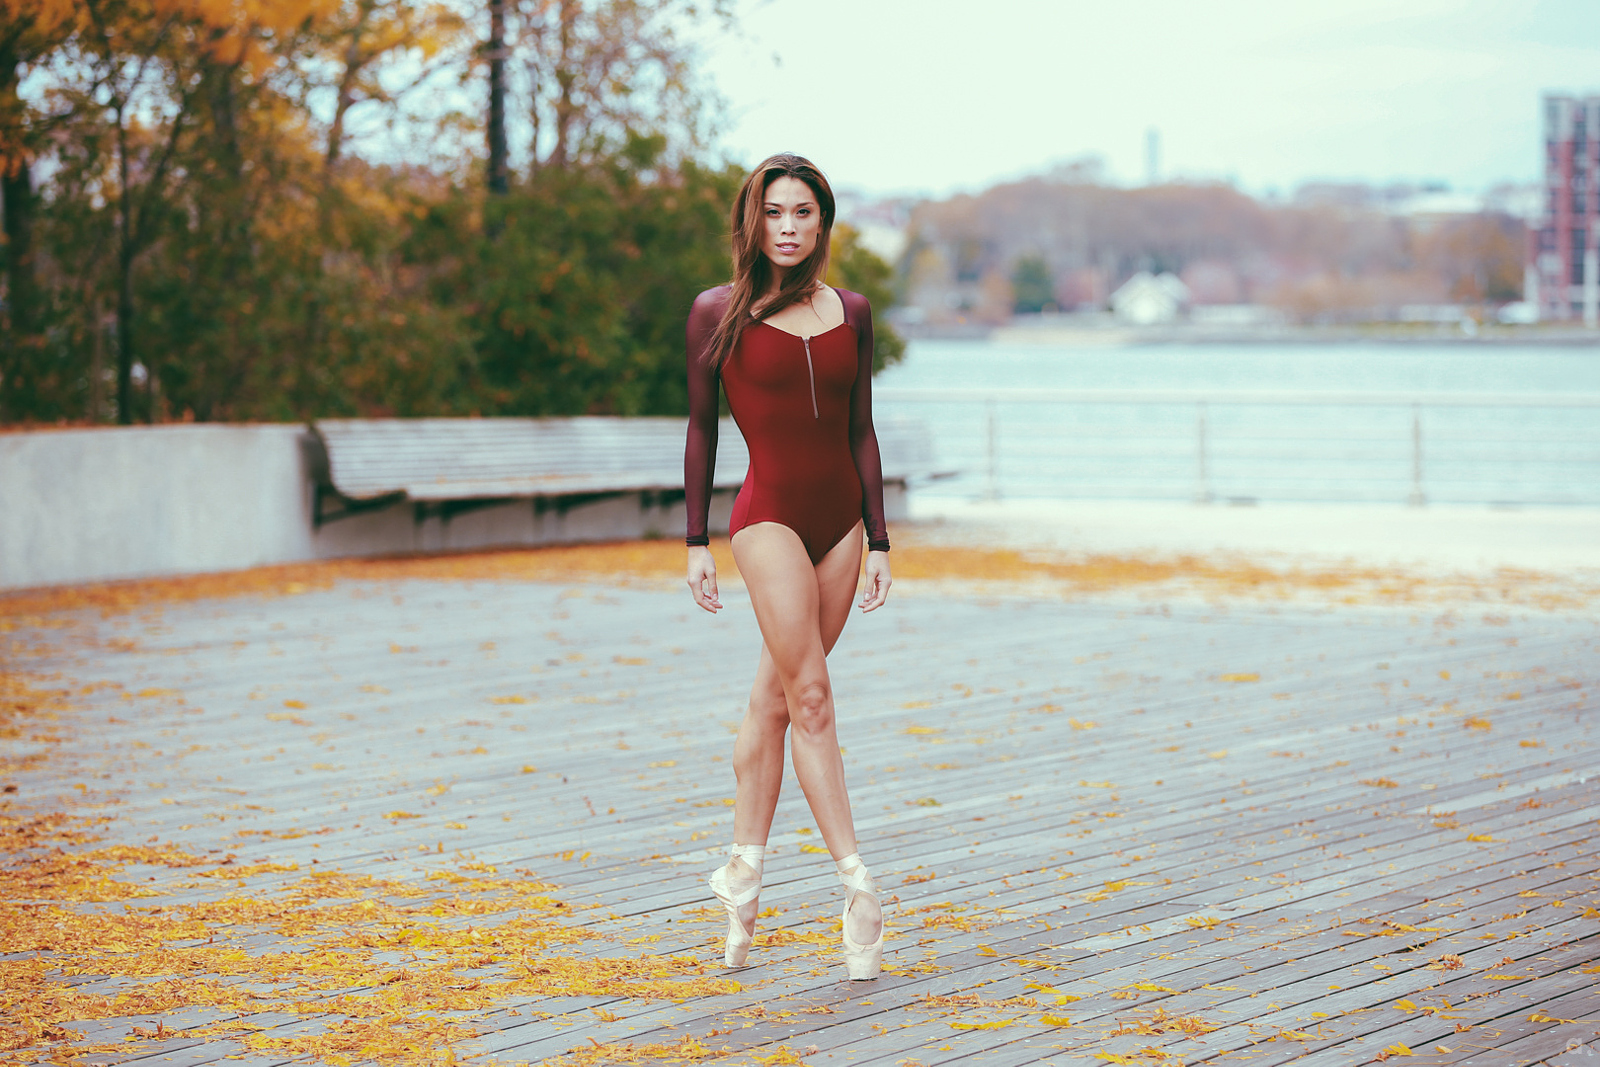 5 Tips for Your First Photo Shoot with a Dancer